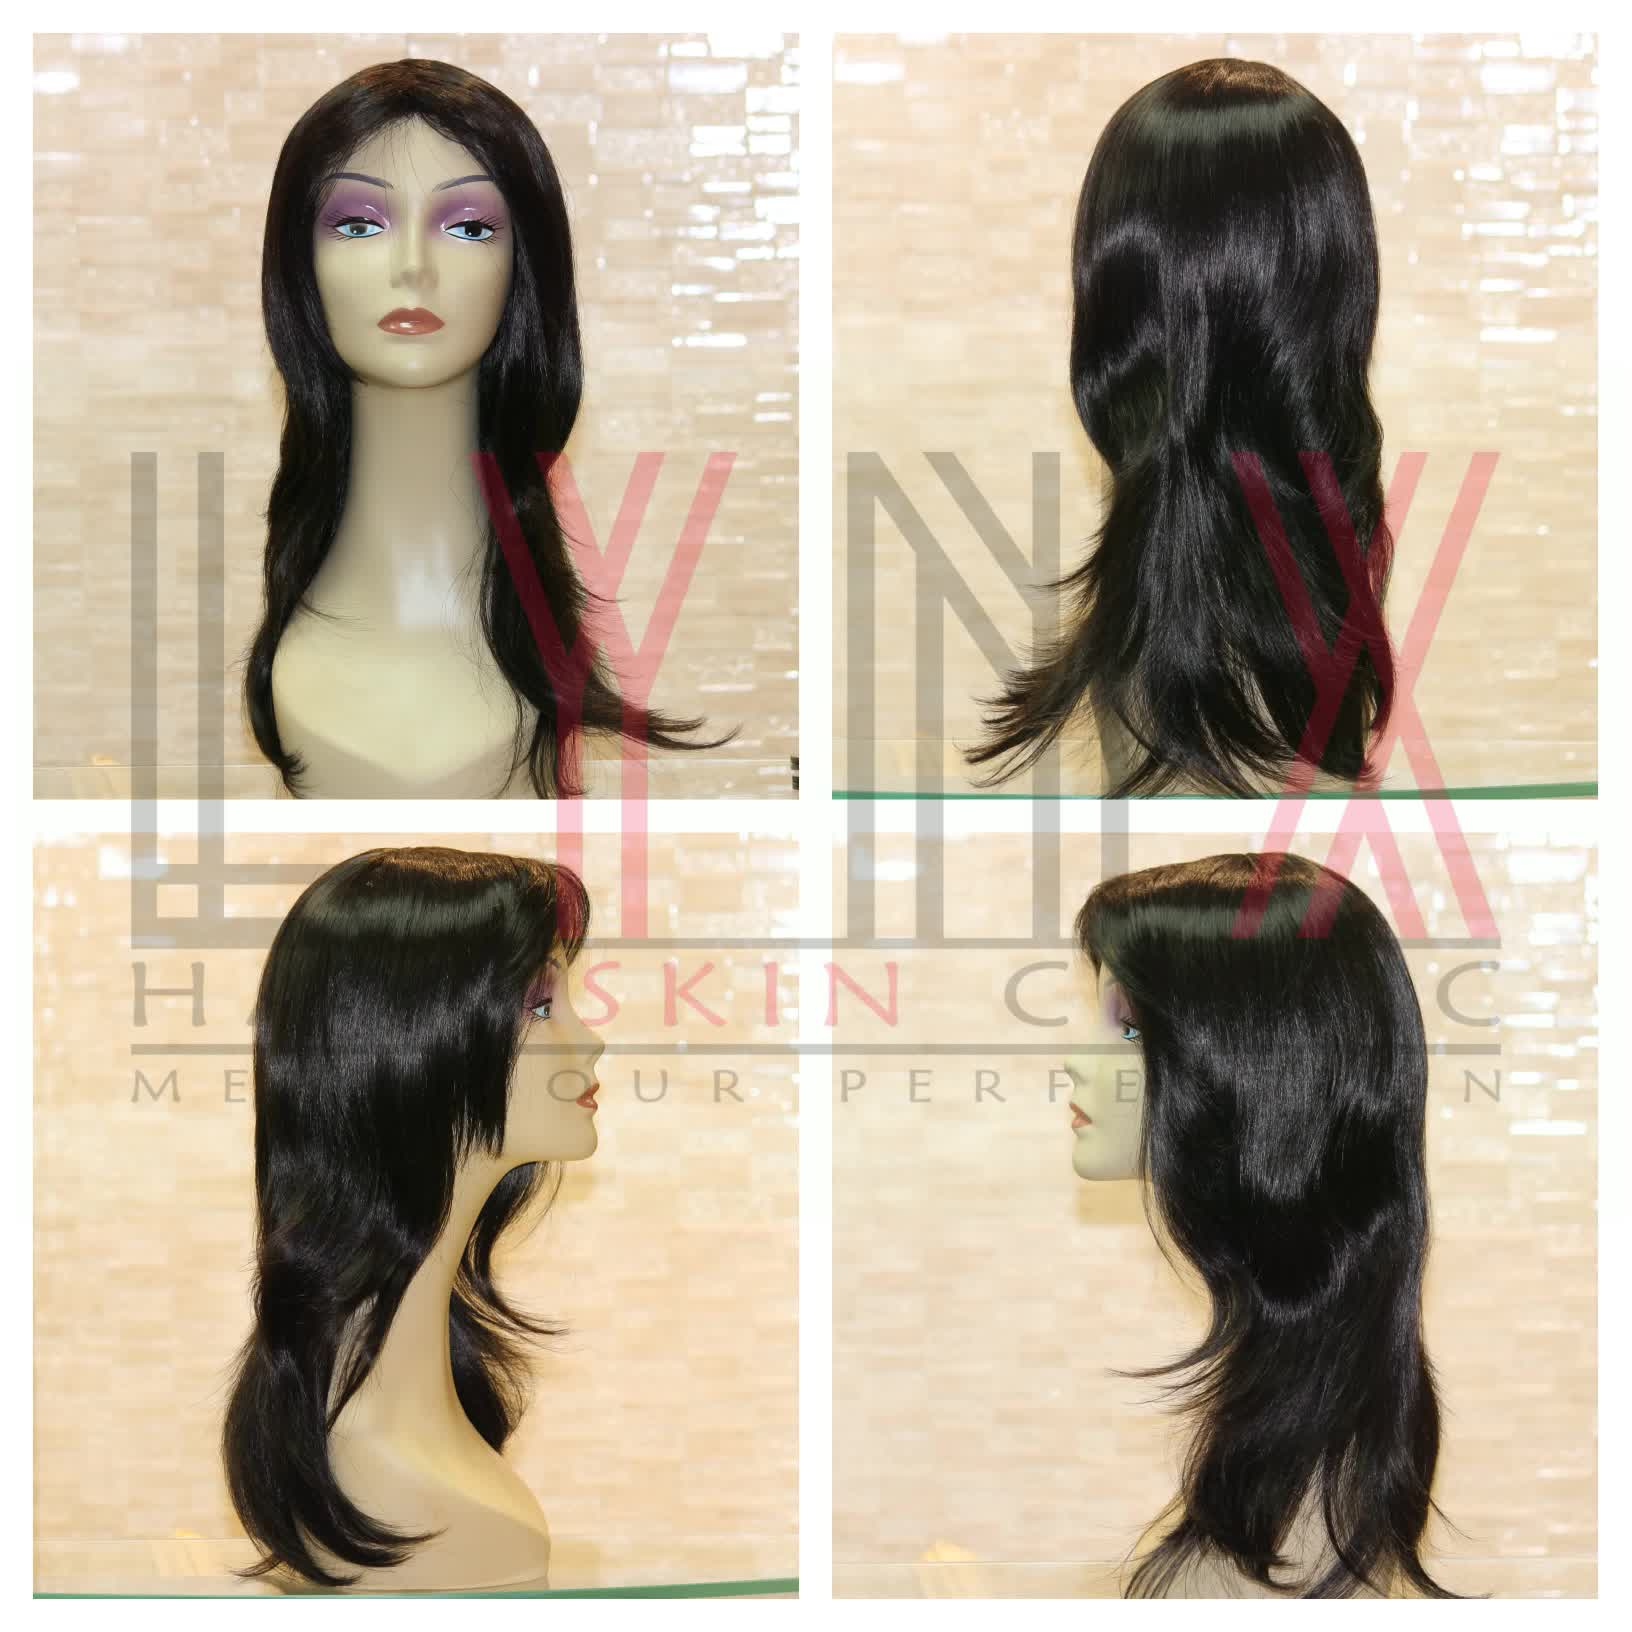 Hair Wigs In Gurgaon Best Wigs Price Review Clinic Services In